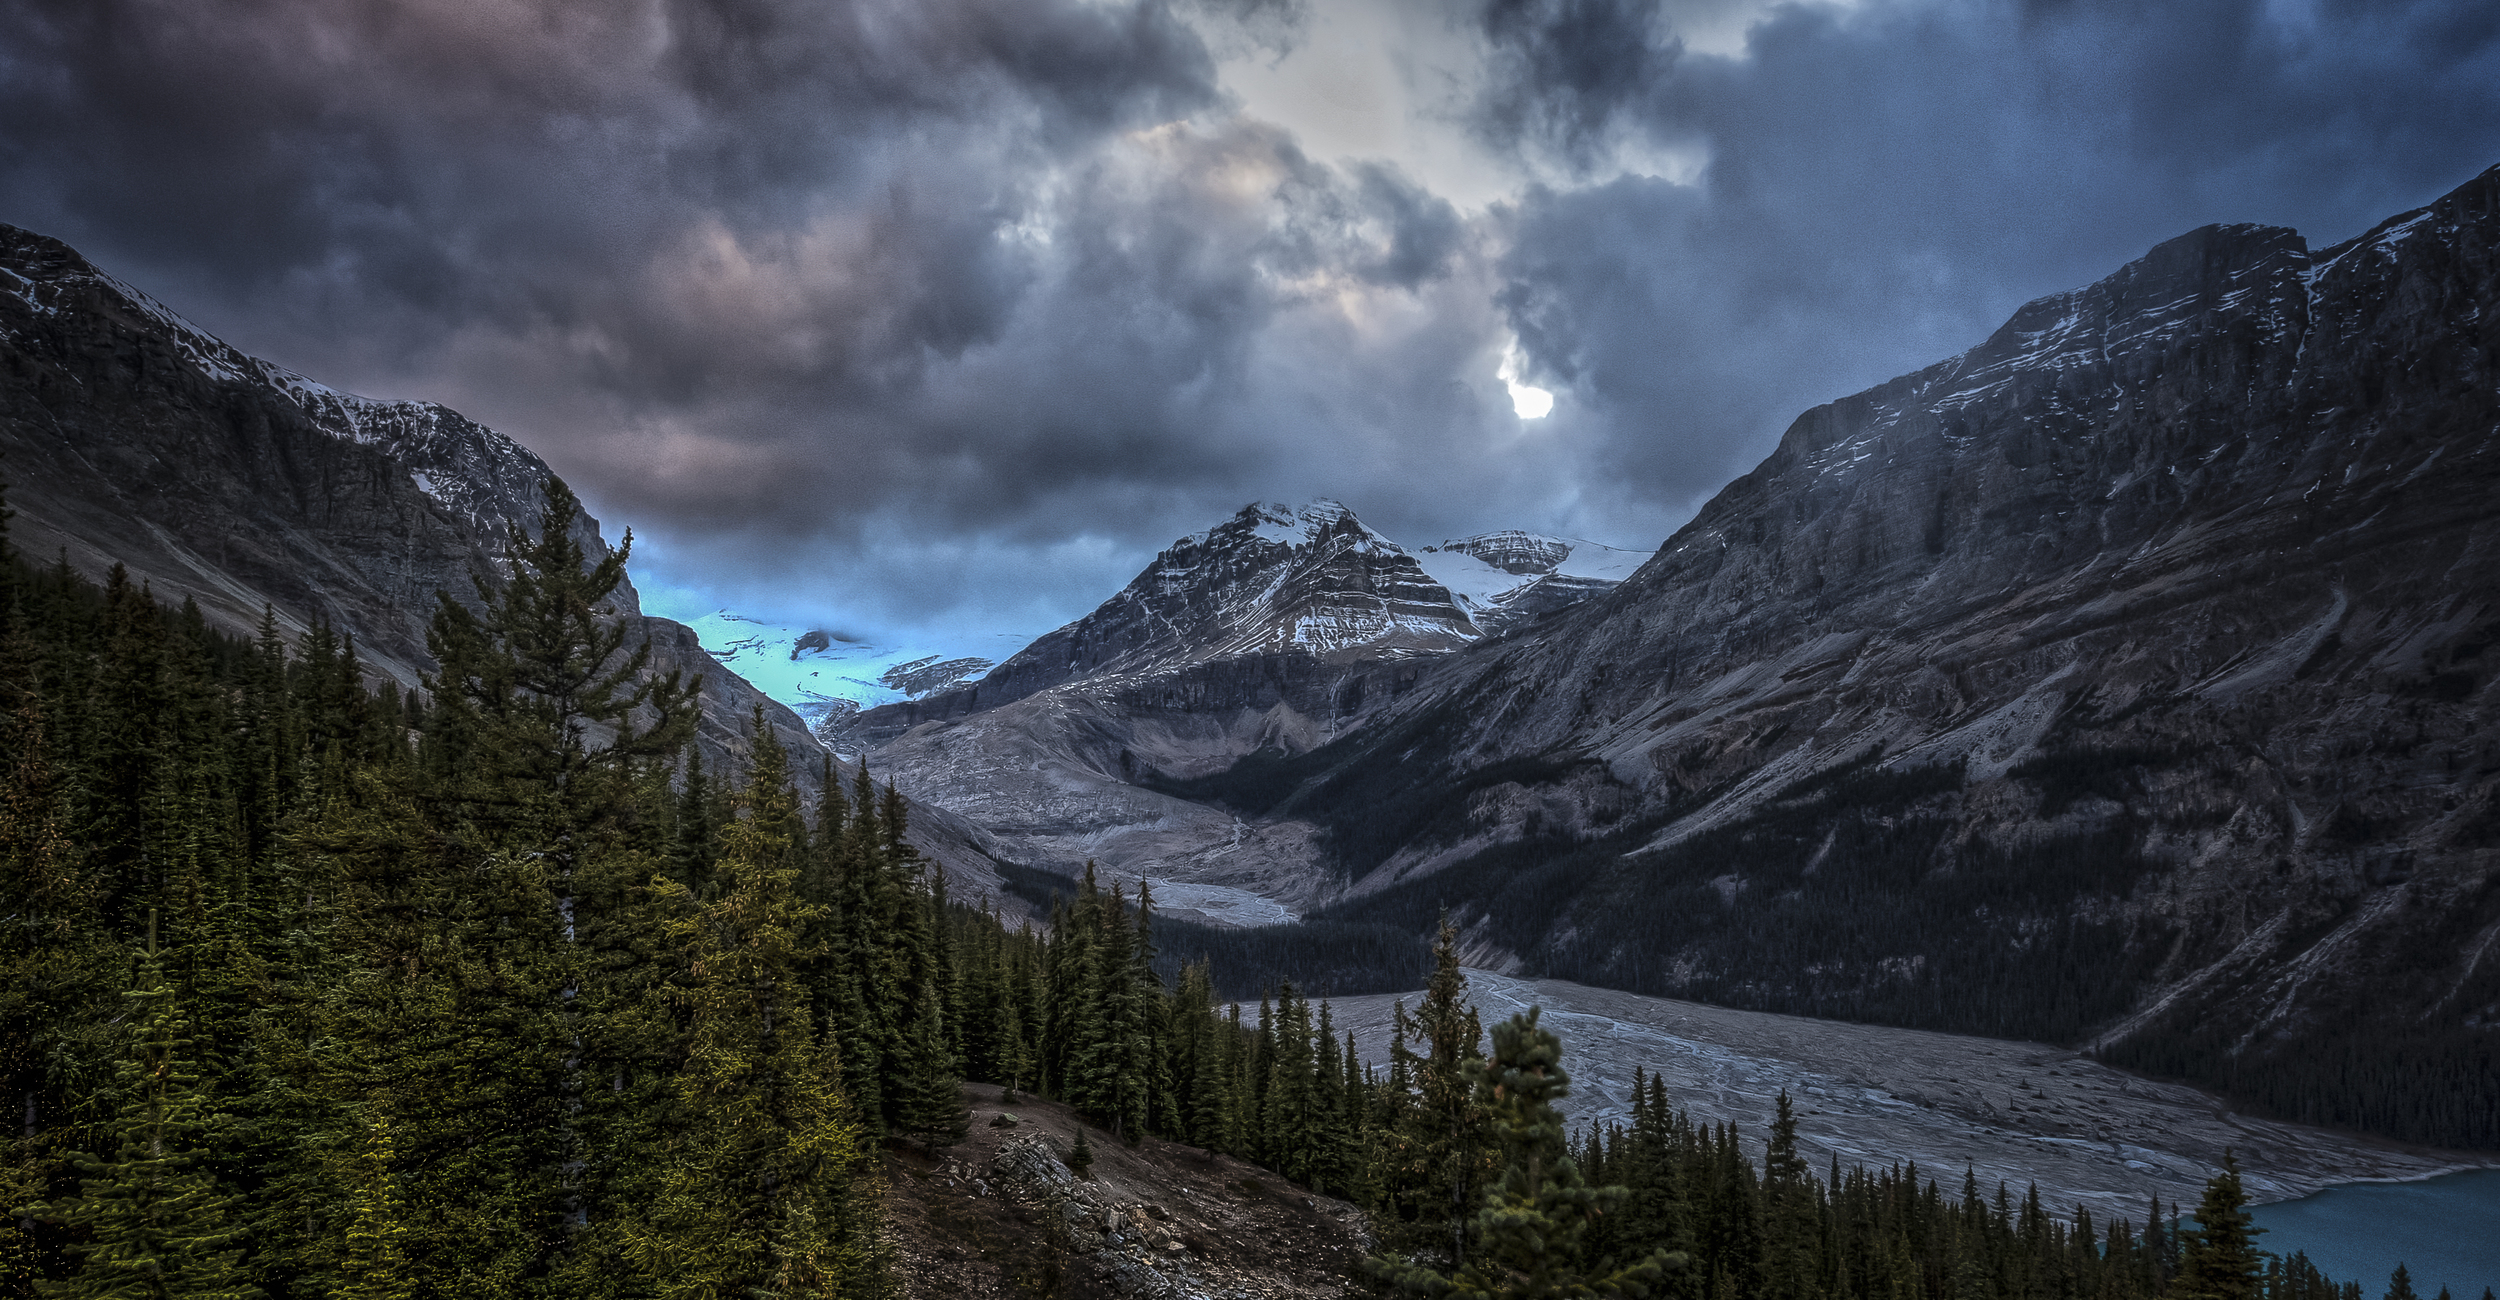 Along the Icefields Parkway in Alberta, Canada | October 2015